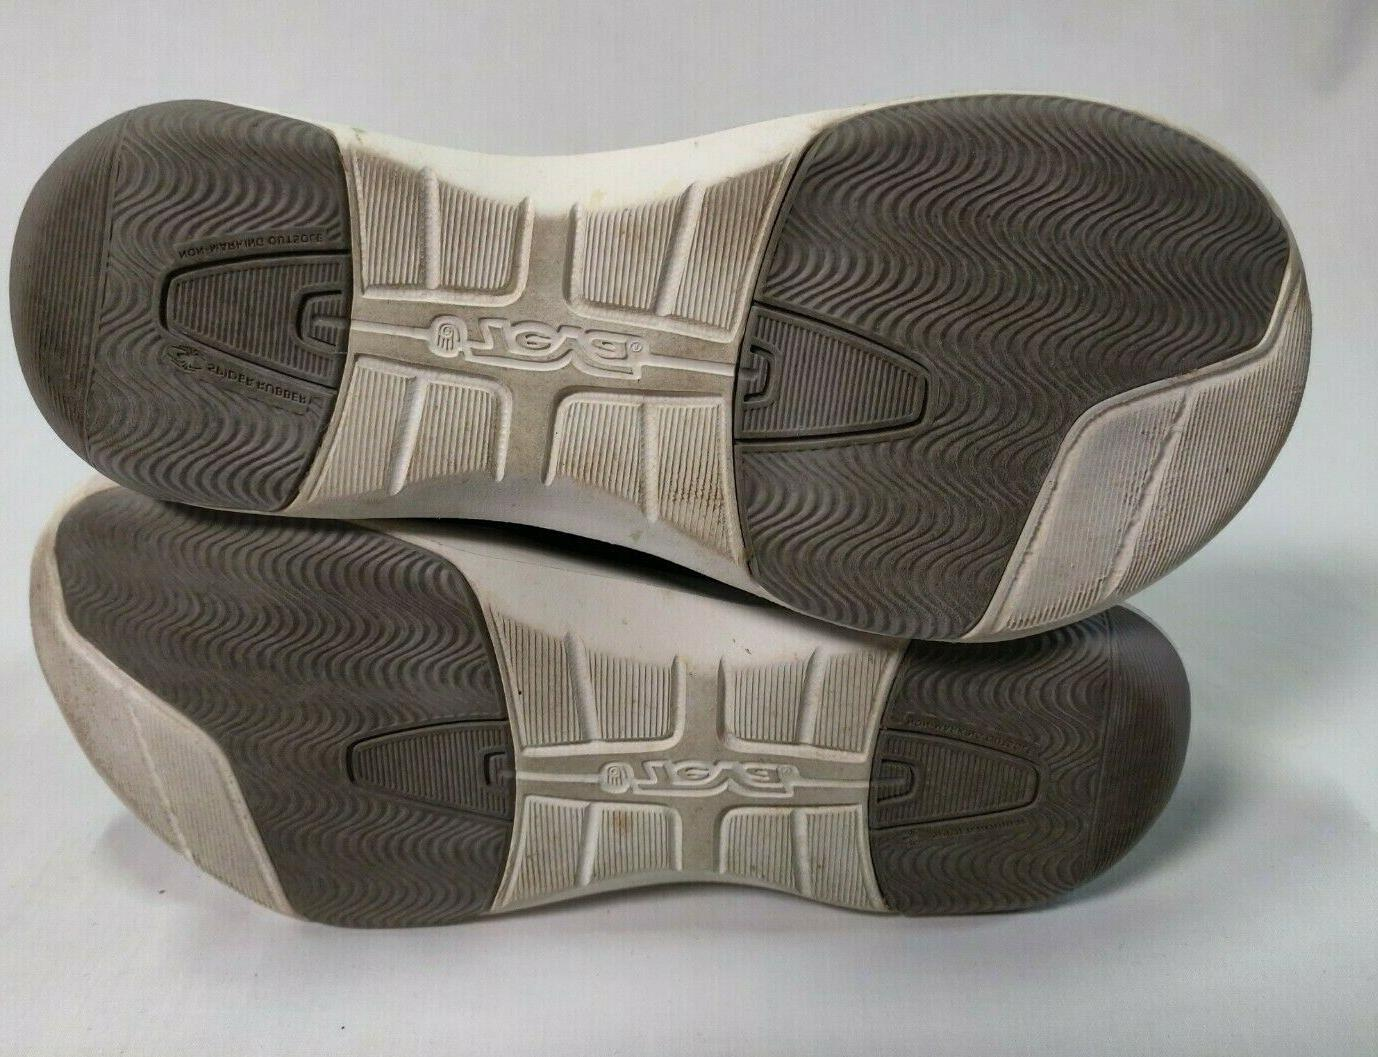 $60 Teva Wander Chukka Women's Shoes Boots Gray 7